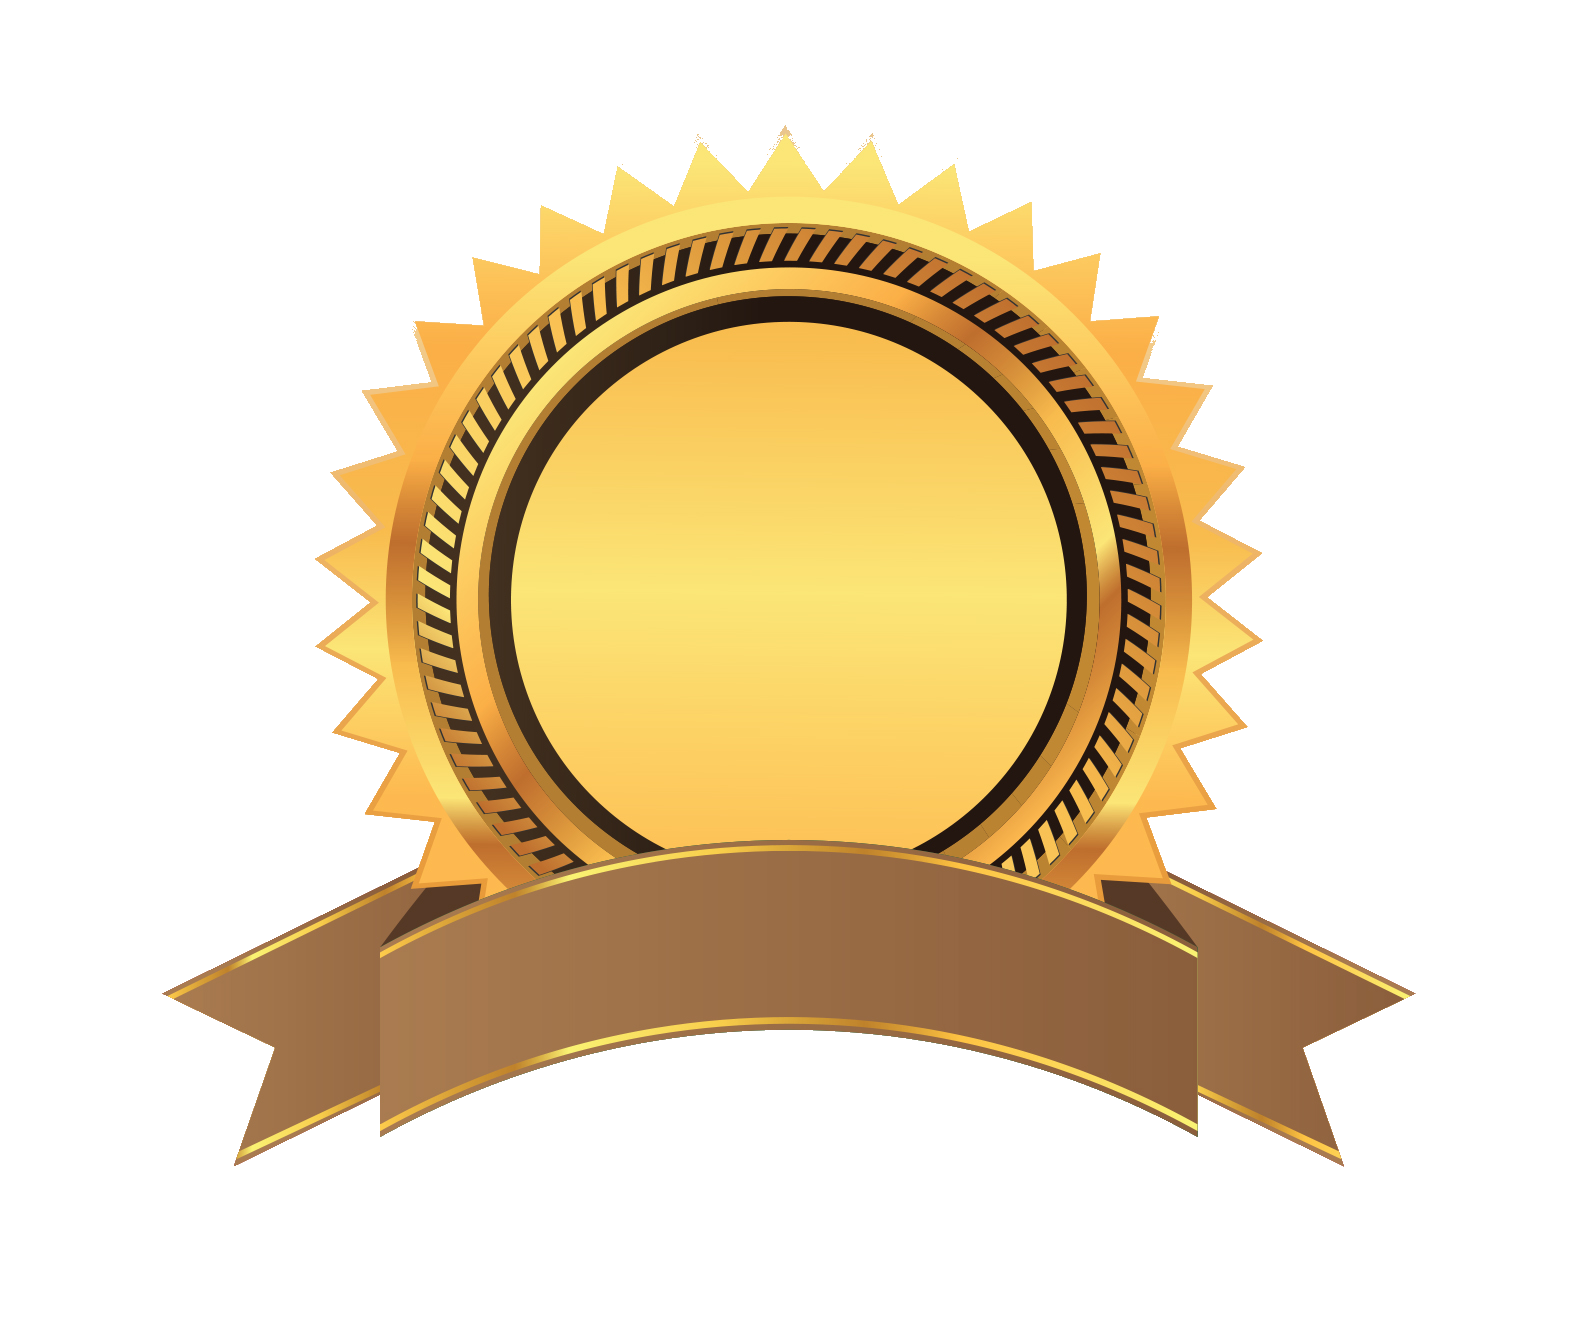 Book award clipart image stock 19 Certificate clipart book award HUGE FREEBIE! Download for ... image stock